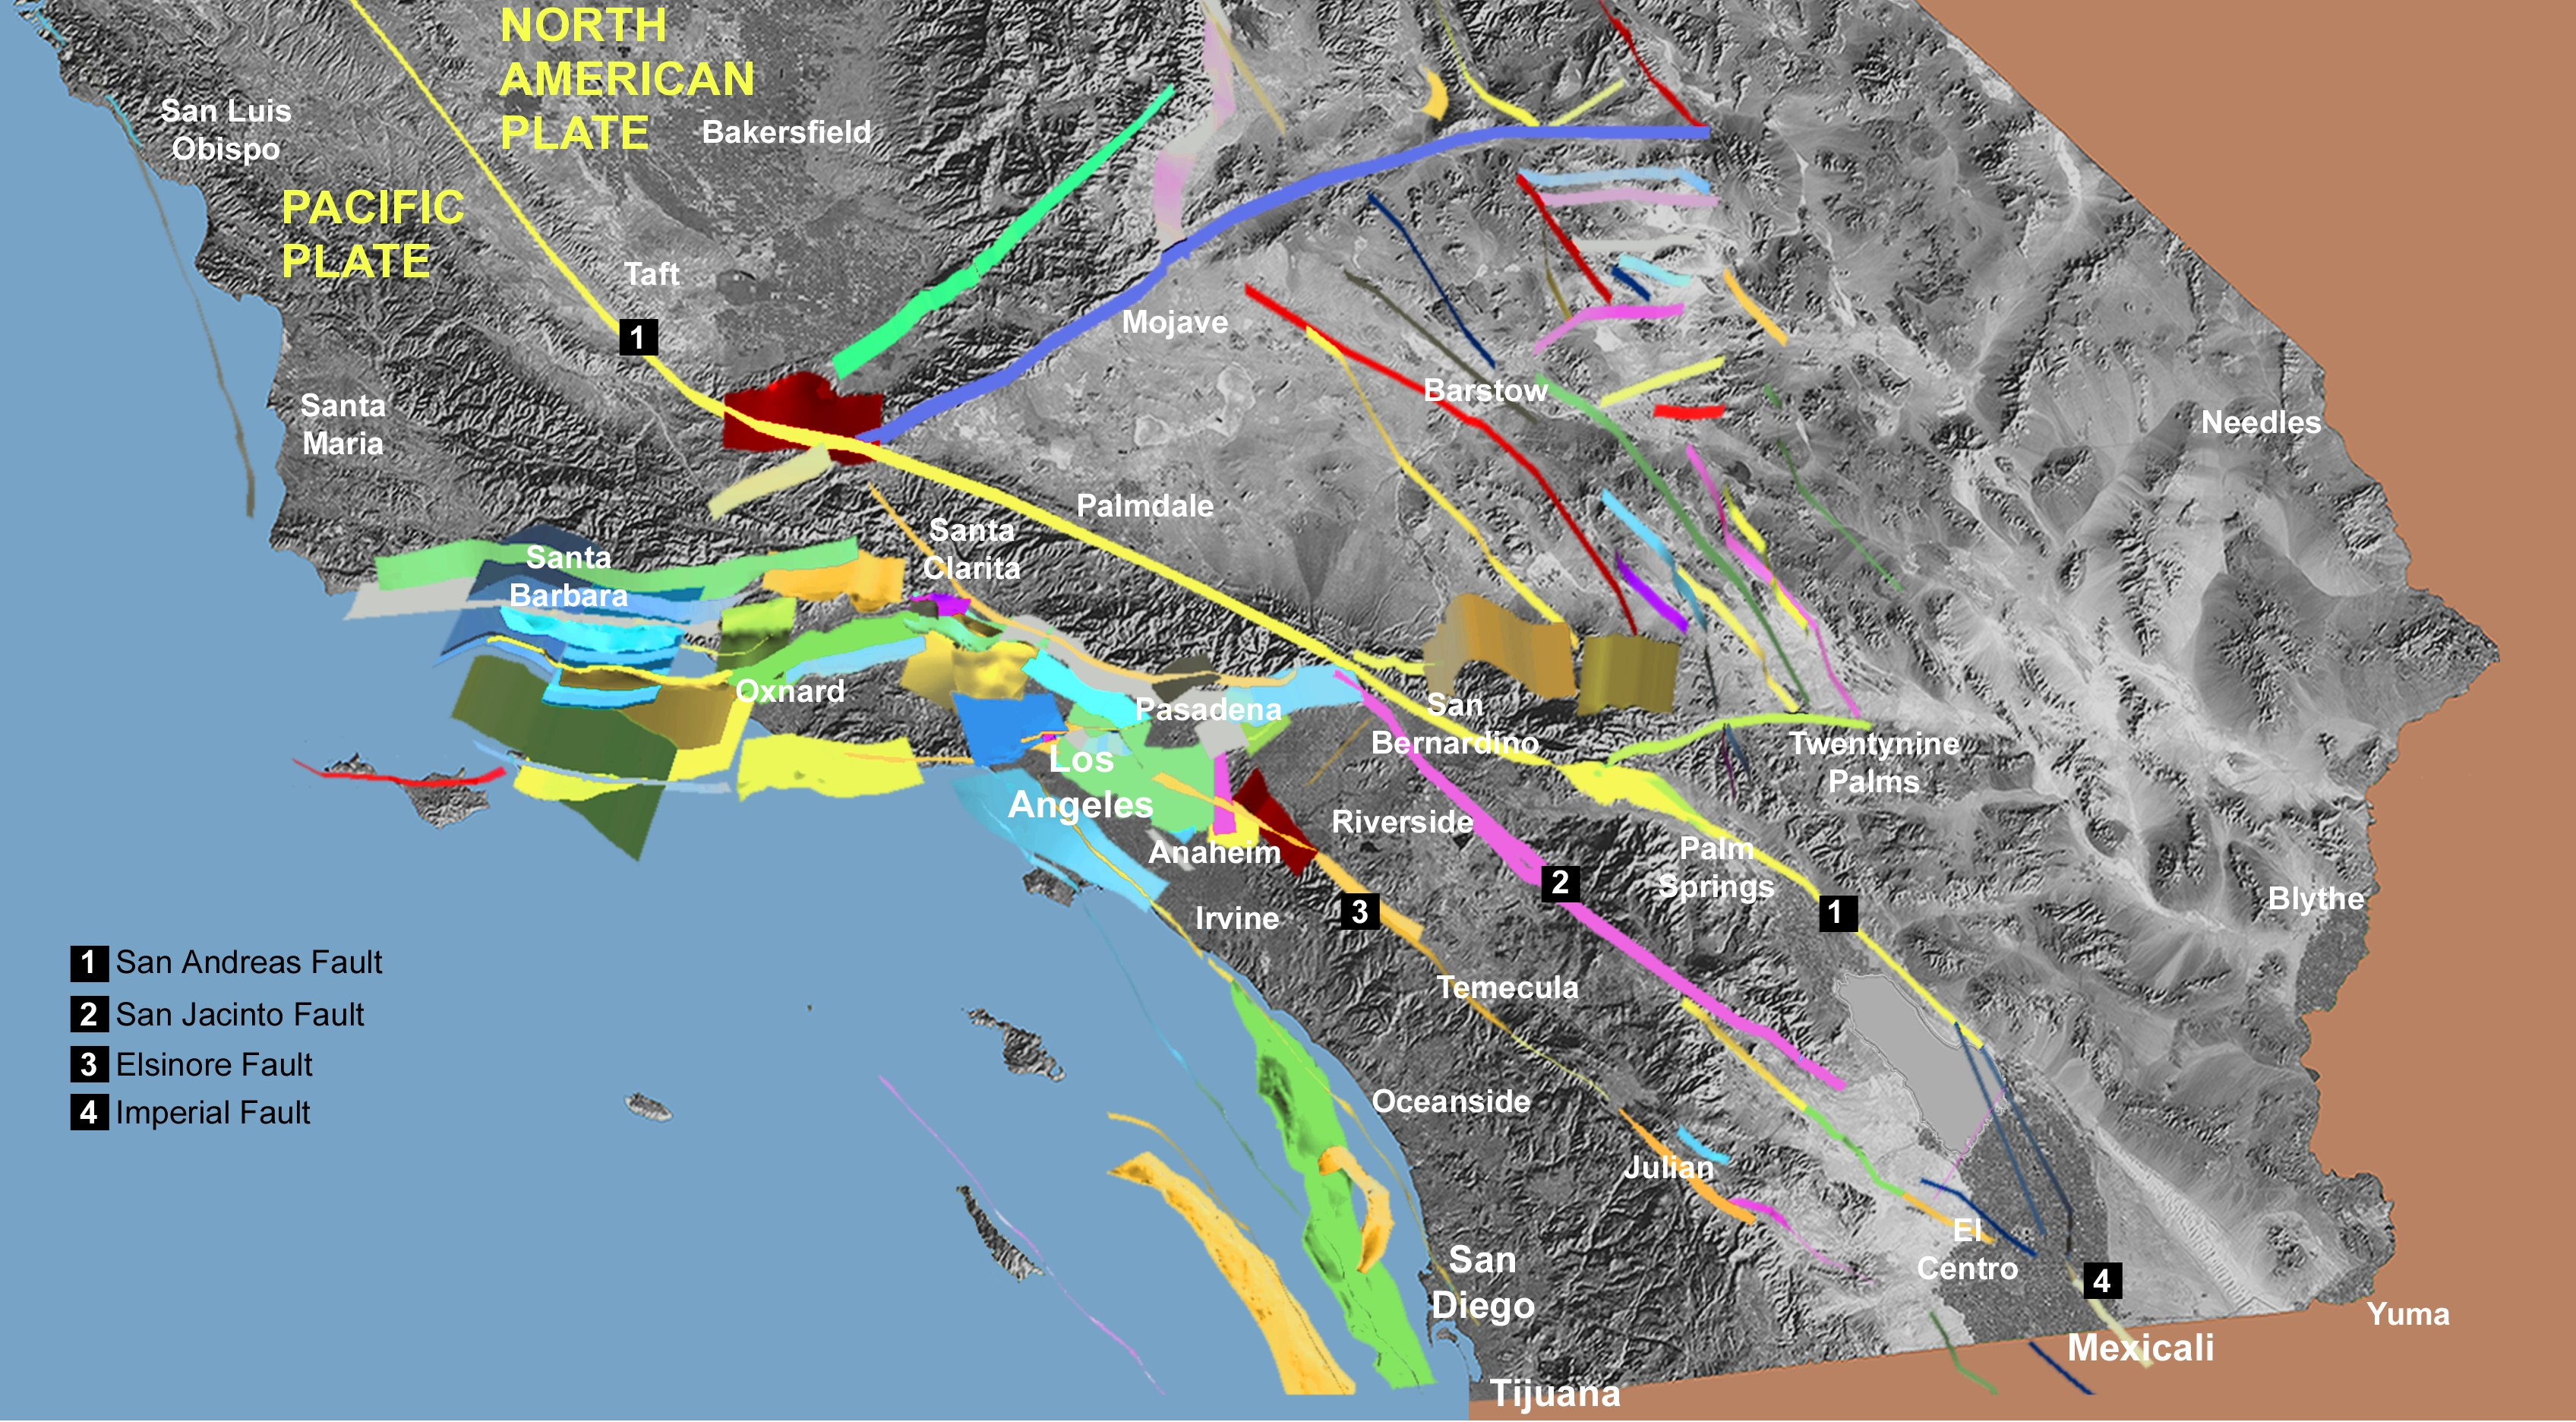 southern california fault lines google maps california map